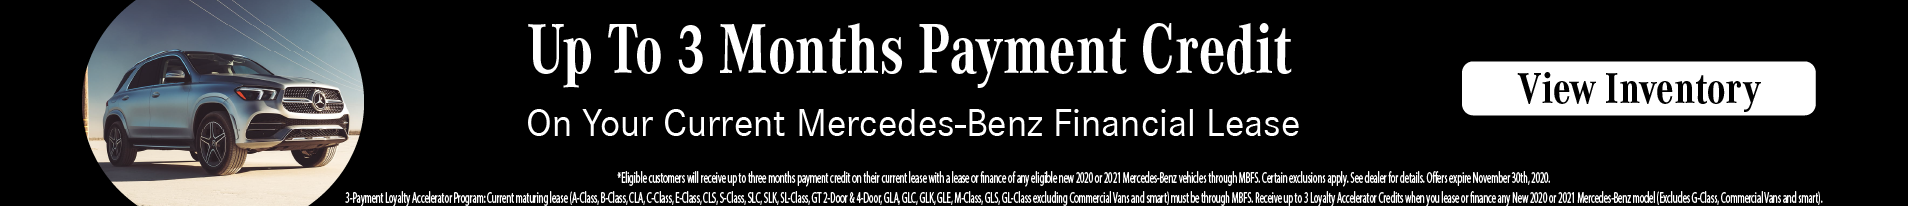 MB Payment Credit